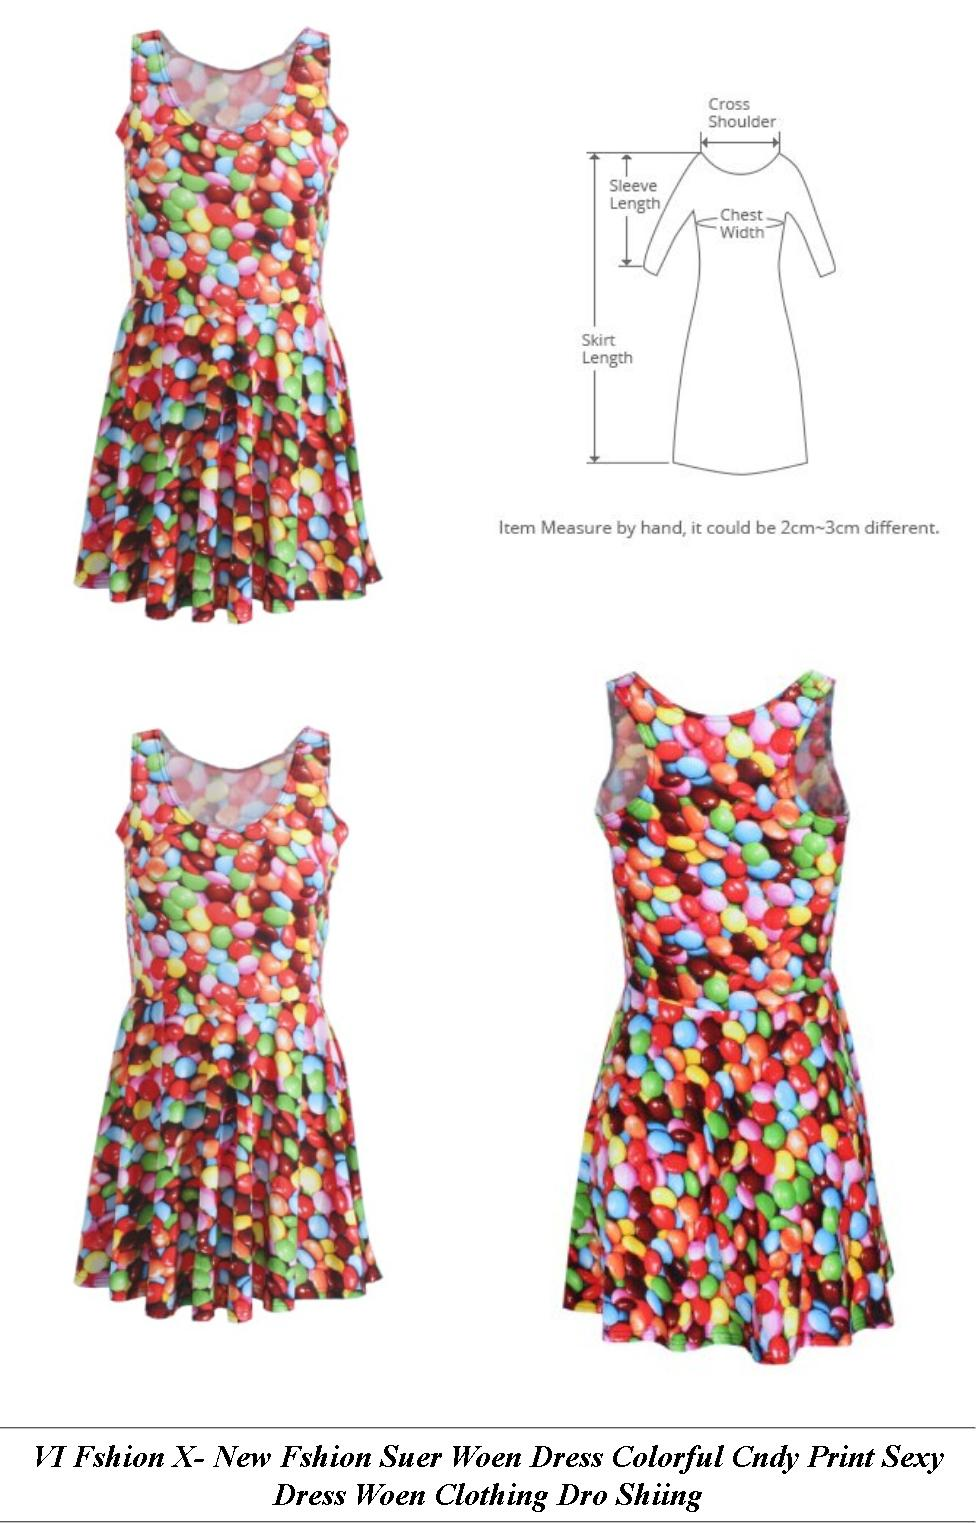 Party Dresses - Womens Summer Clothes On Sale - Baby Dress - Cheap Cute Clothes